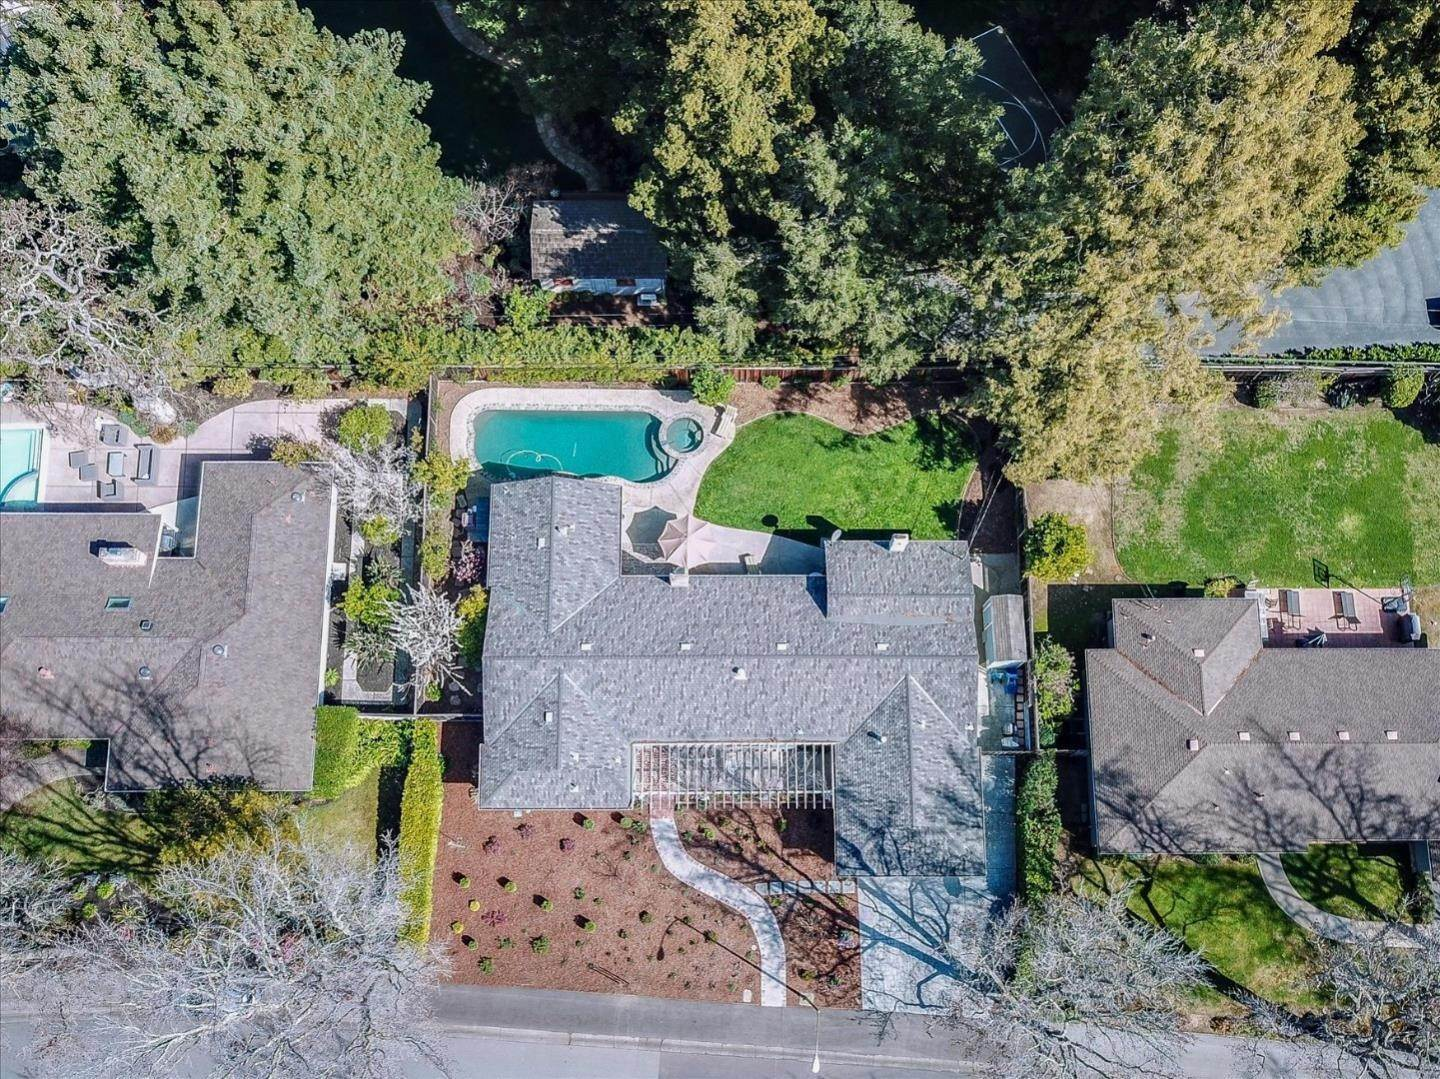 Property for Sale at 1330 Cotton Street Menlo Park, California 94025 United States